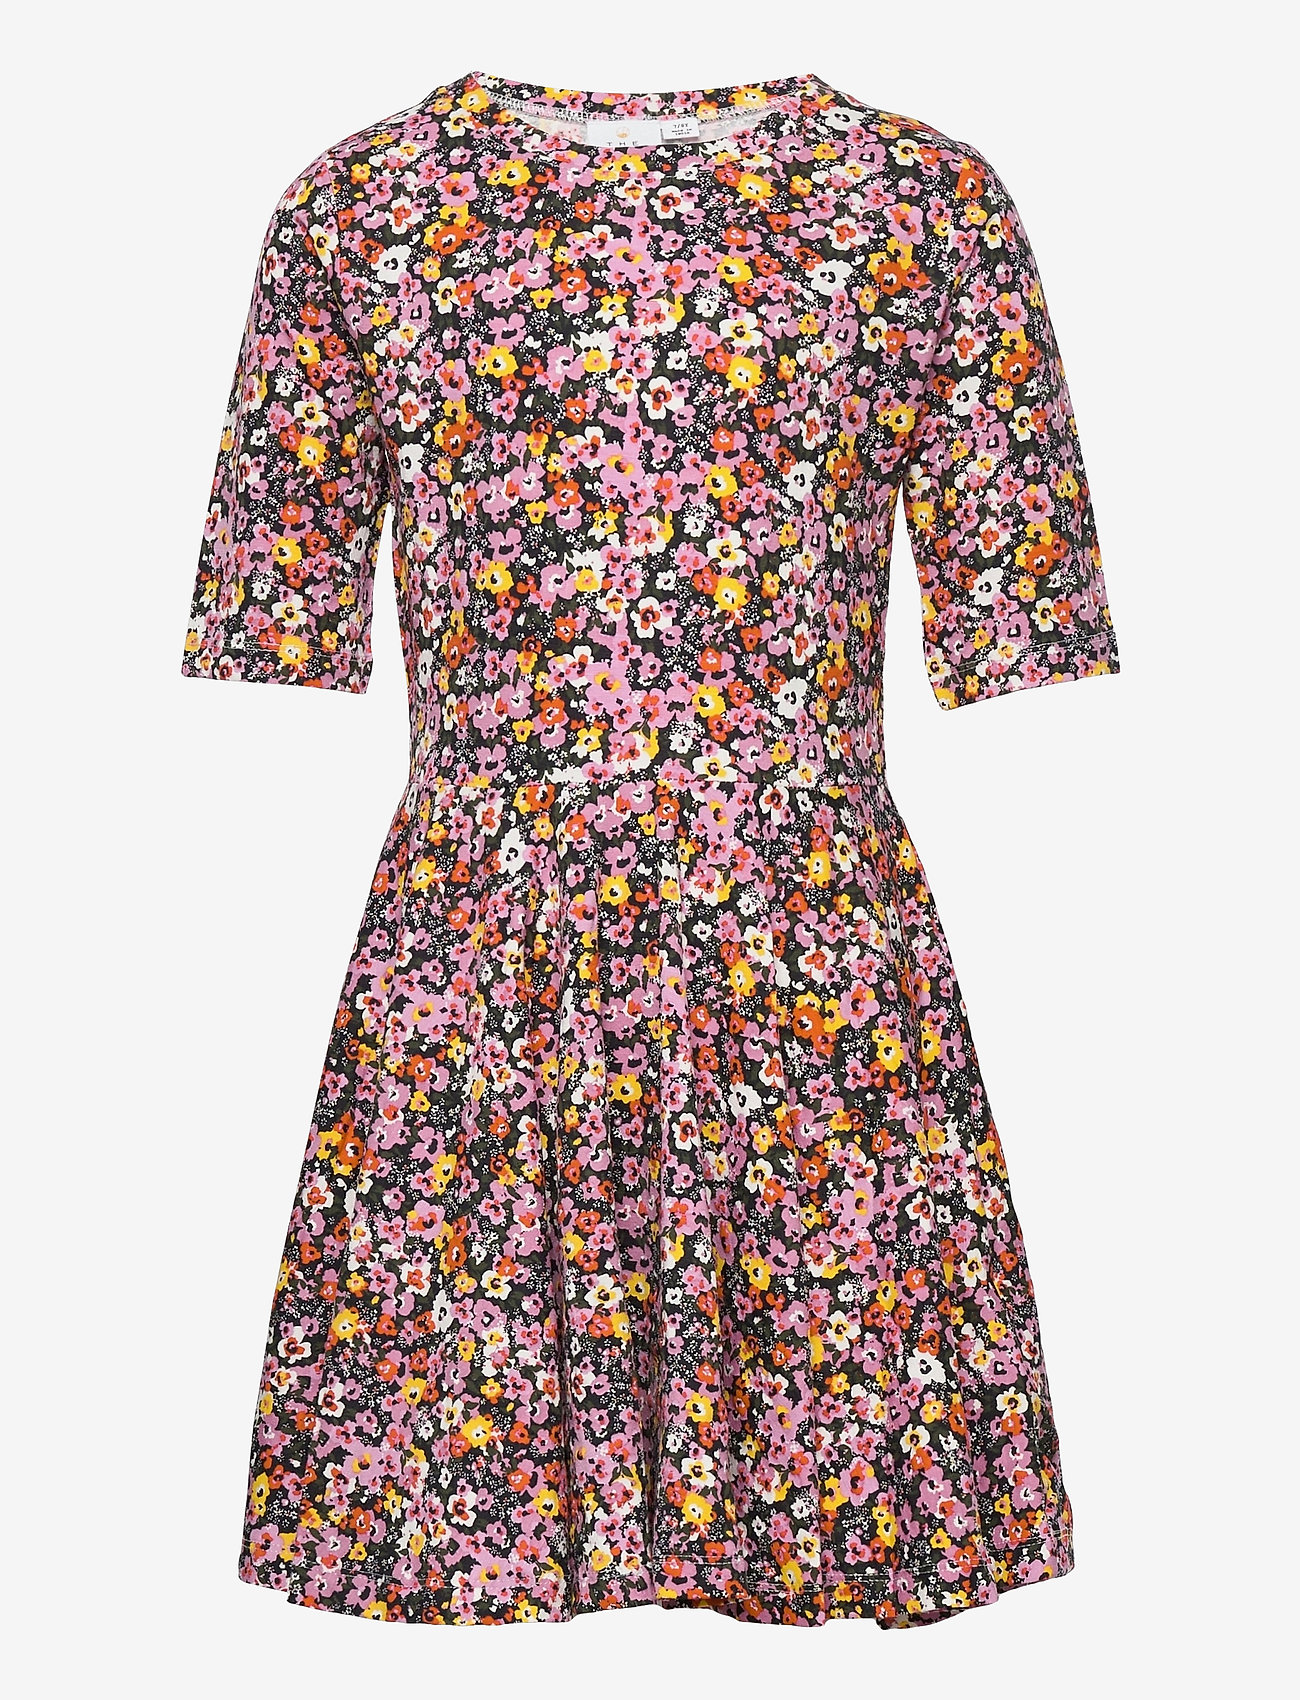 The New - TRY S_S DRESS - kleider - floral aop - 0